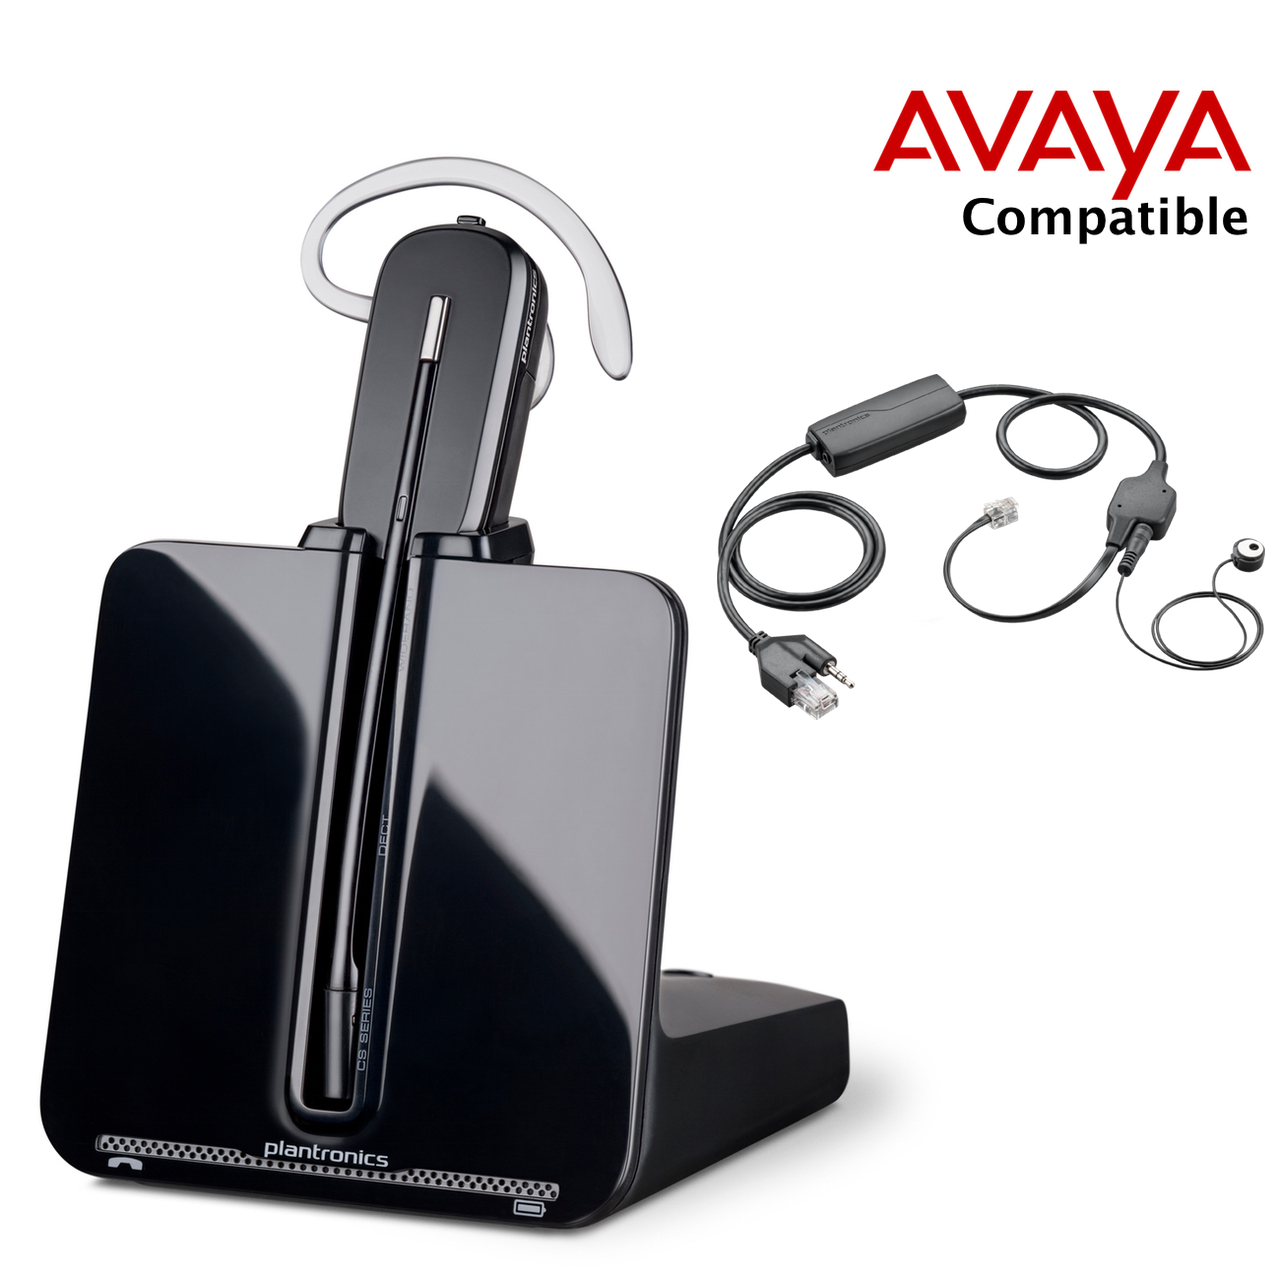 Wireless Headset For Avaya 1416 Wiring Center Store Gtgt 944 2 Brake System Rear Diagram Compatible Plantronics Voip Bundle Rh Headsetstore Global Teck Com One X Communicator